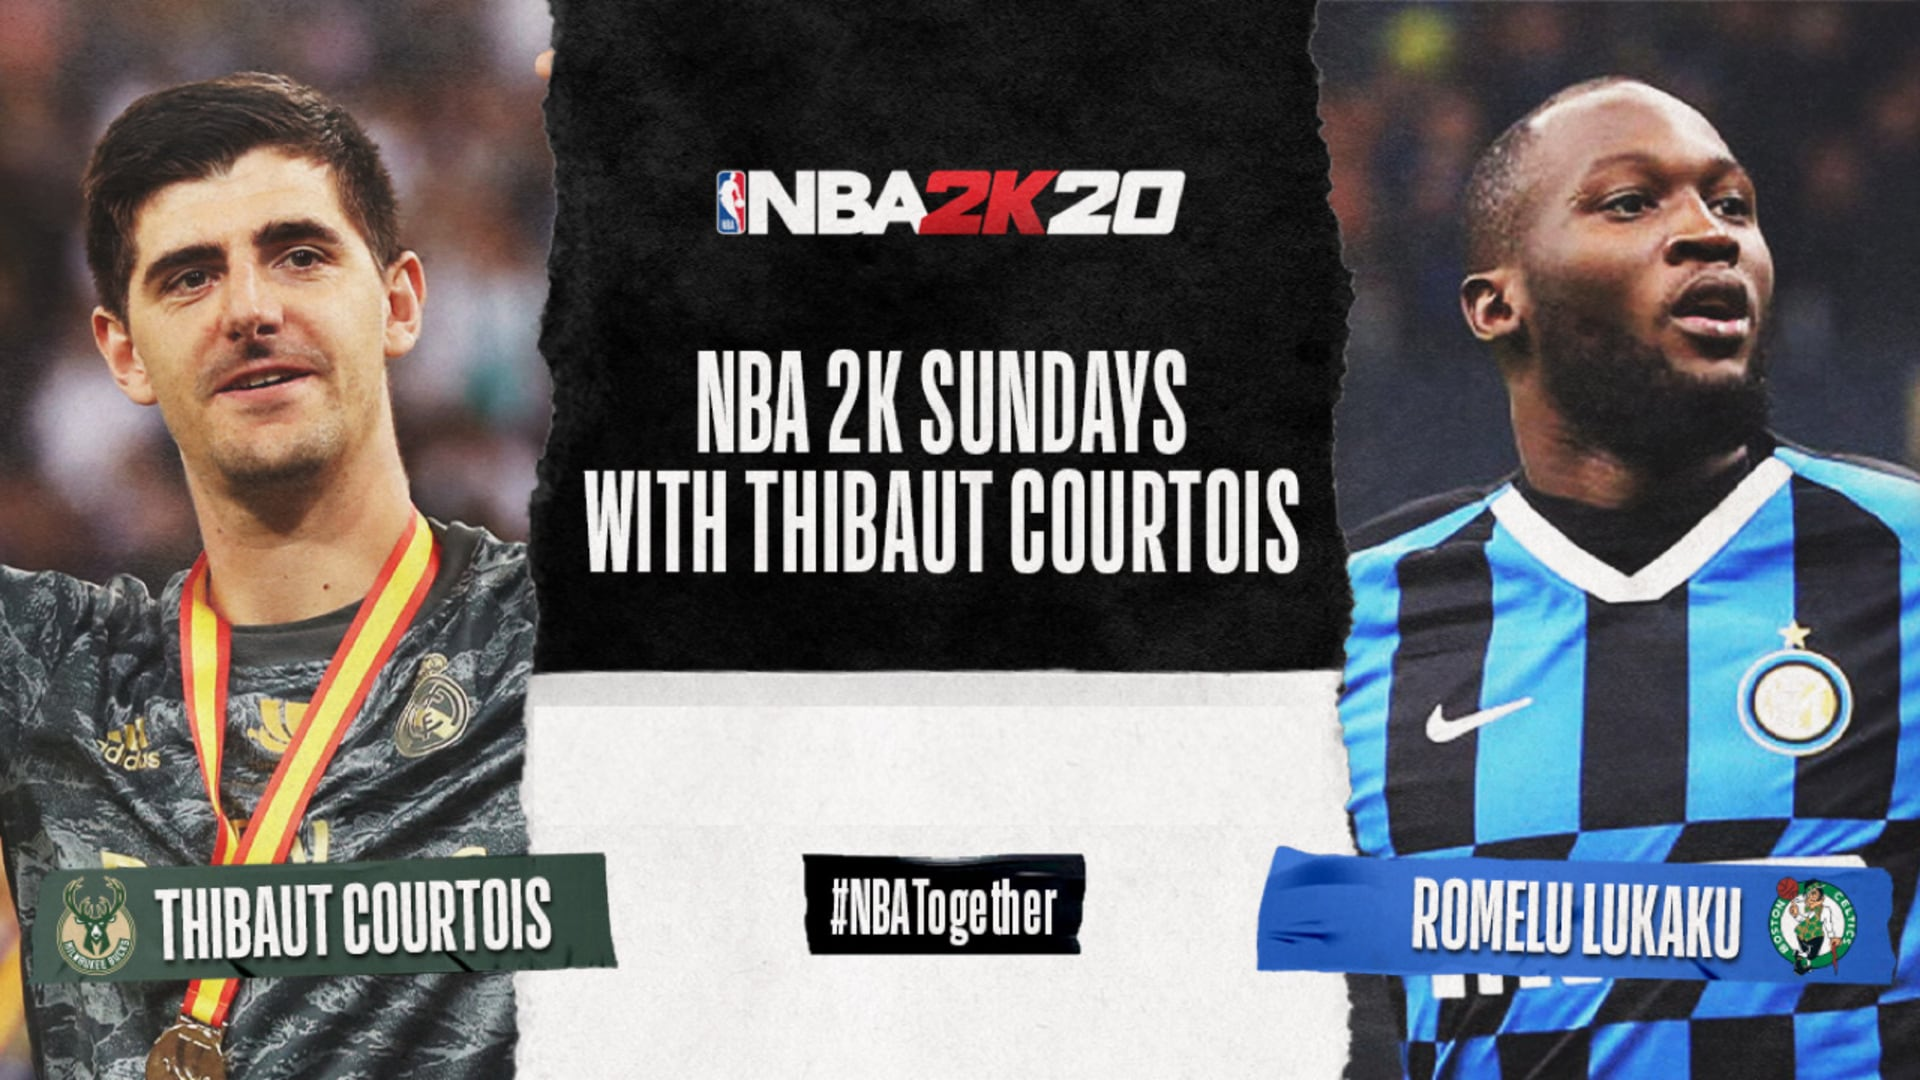 Thibaut Courtois vs. Romelu Lukaku | NBA2K Sundays: Bucks vs. Celtics | 4.5.20